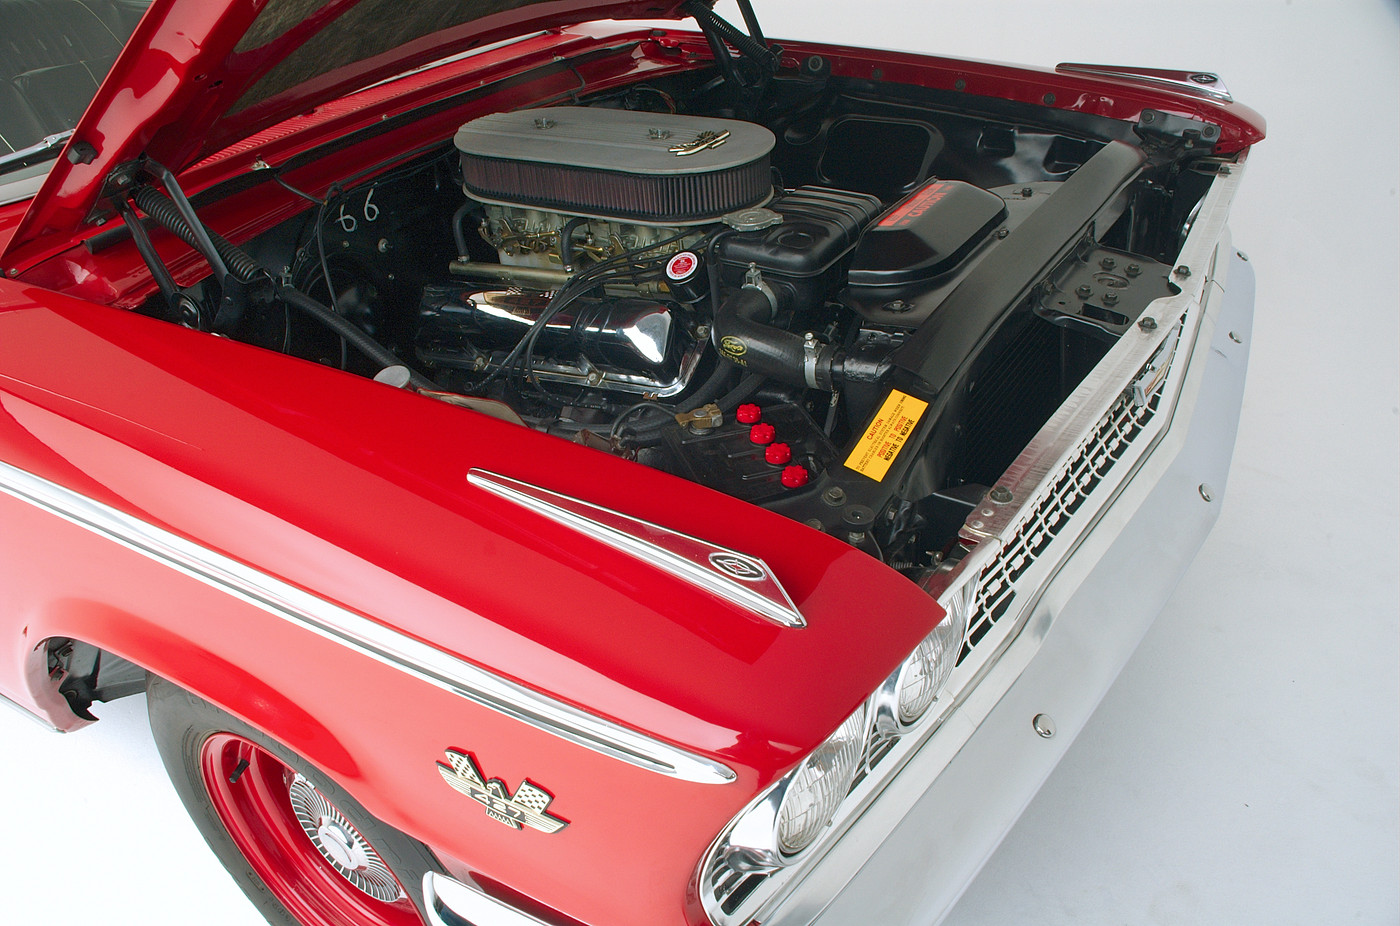 1963 Ford Galaxie 500 XL 427 R-code passenger-side engine compartment view